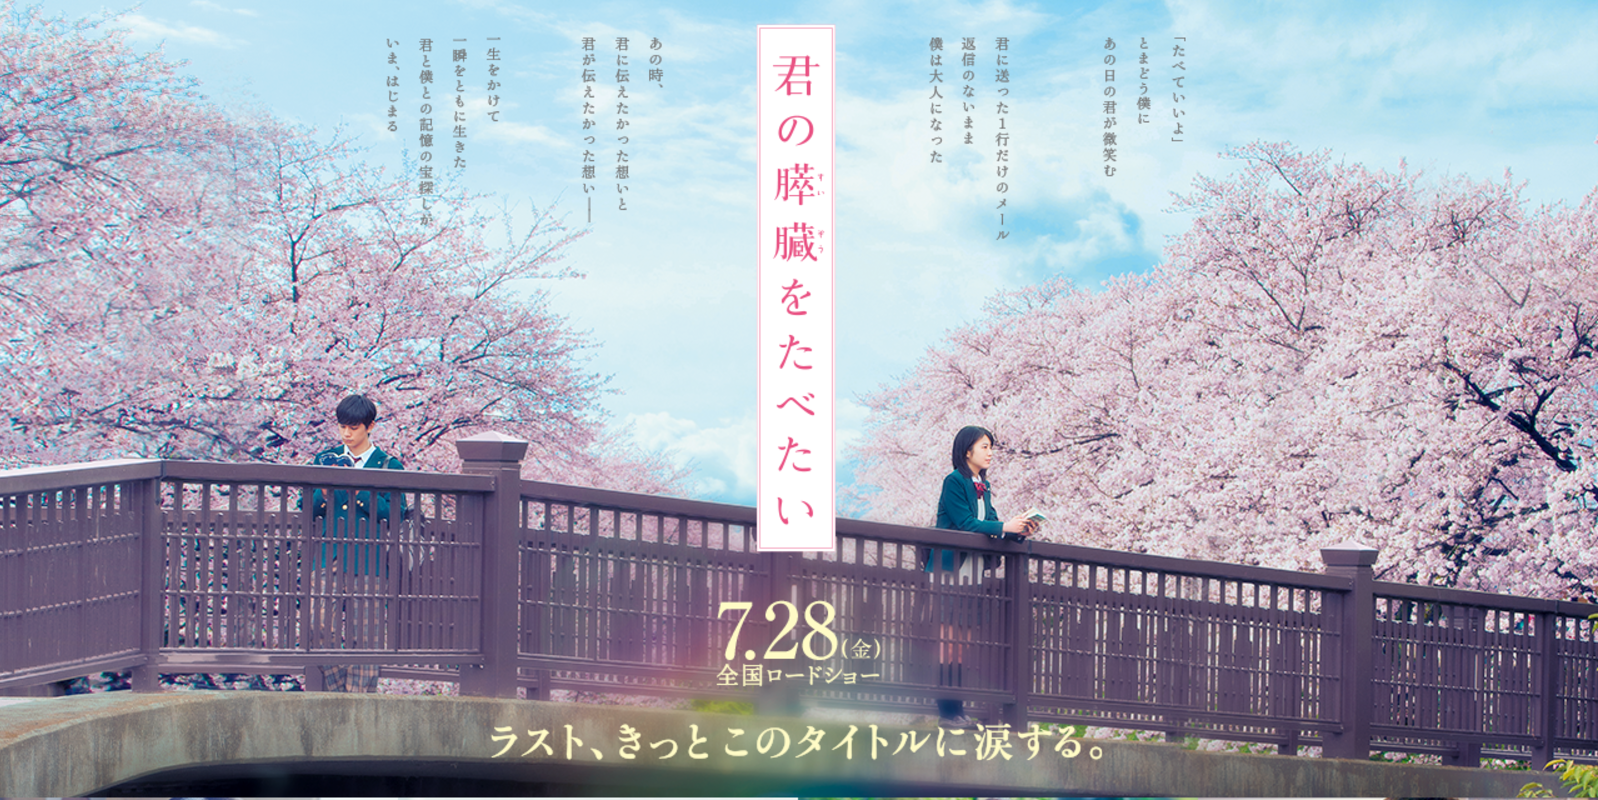 Kimi no Suizō o Tabetai Gets Anime Film In 2018!